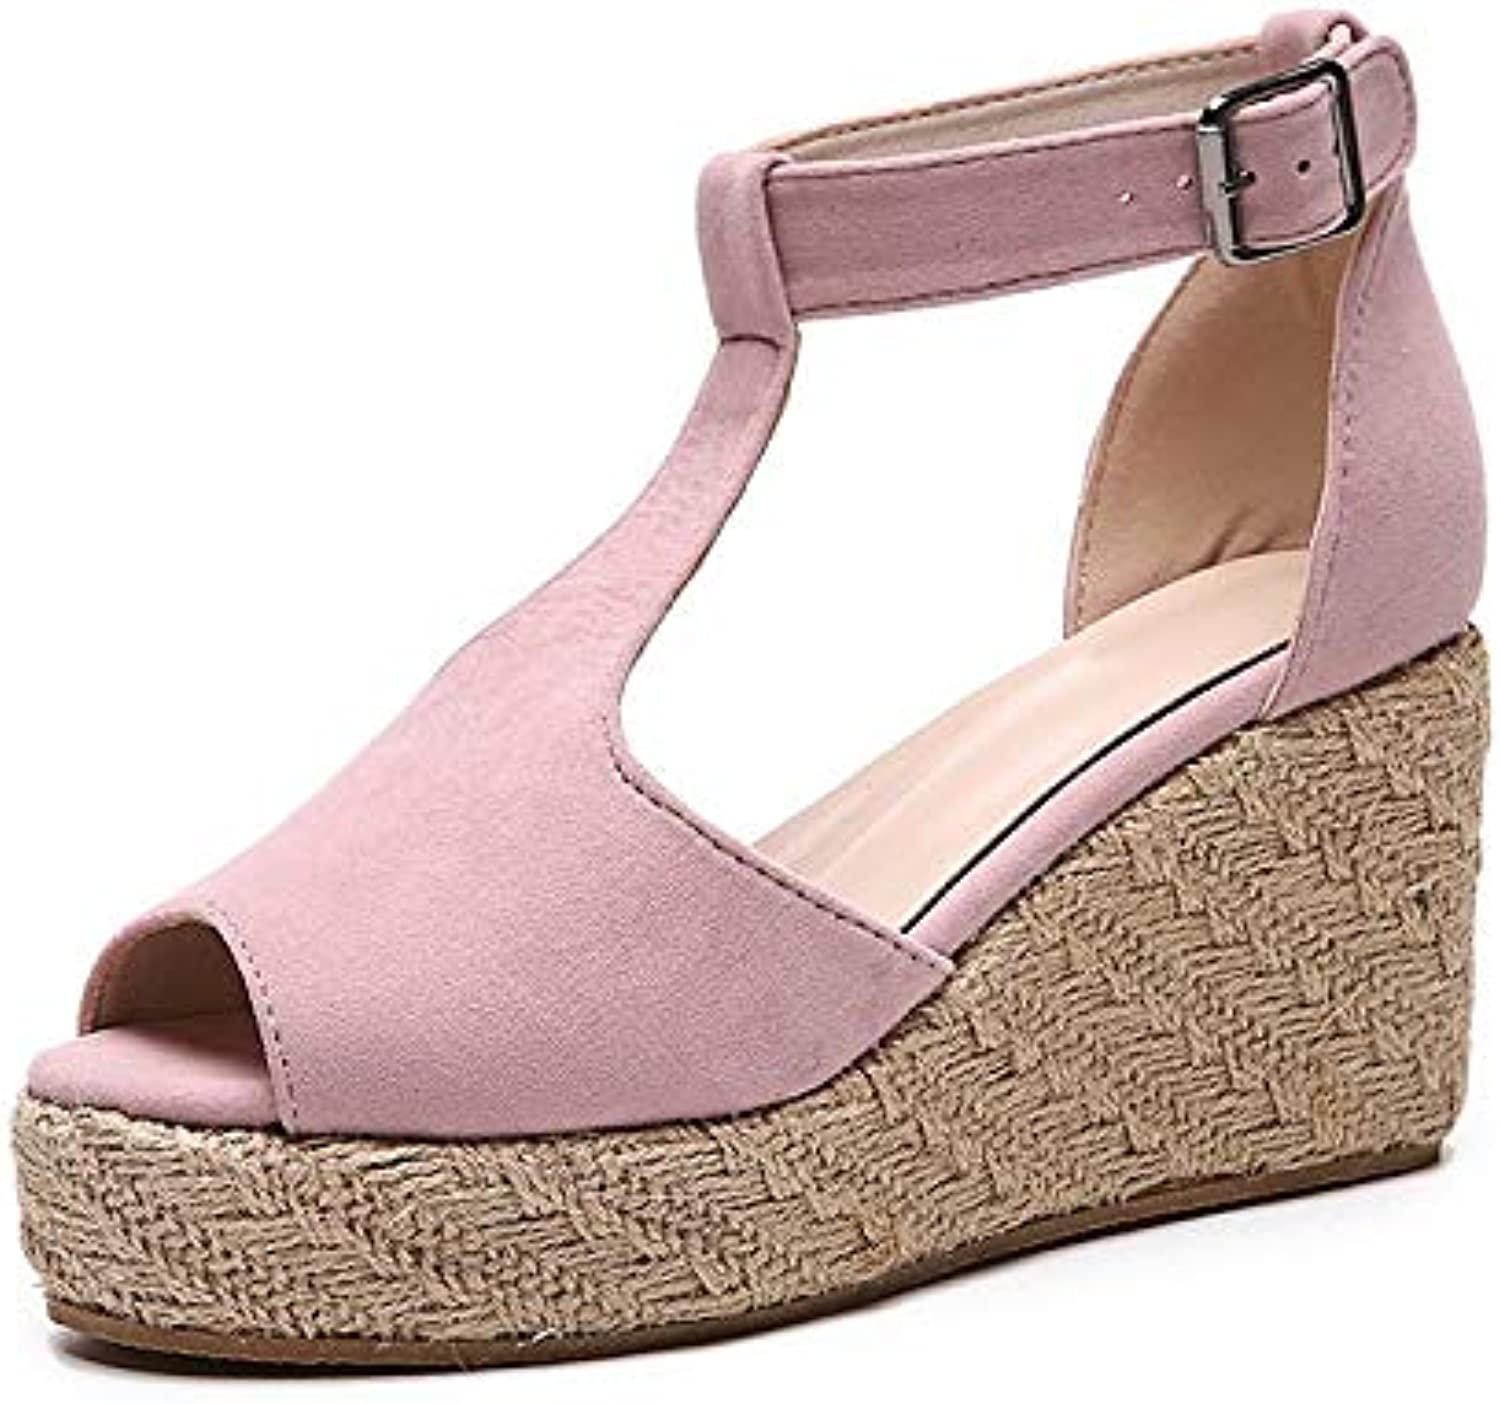 DNJKSA Thick-Soled Muffin shoes, Large-Sized Slope Heel Sandals, Female Summer 2019 Heel Waterproof Platform for Fishmouth shoes